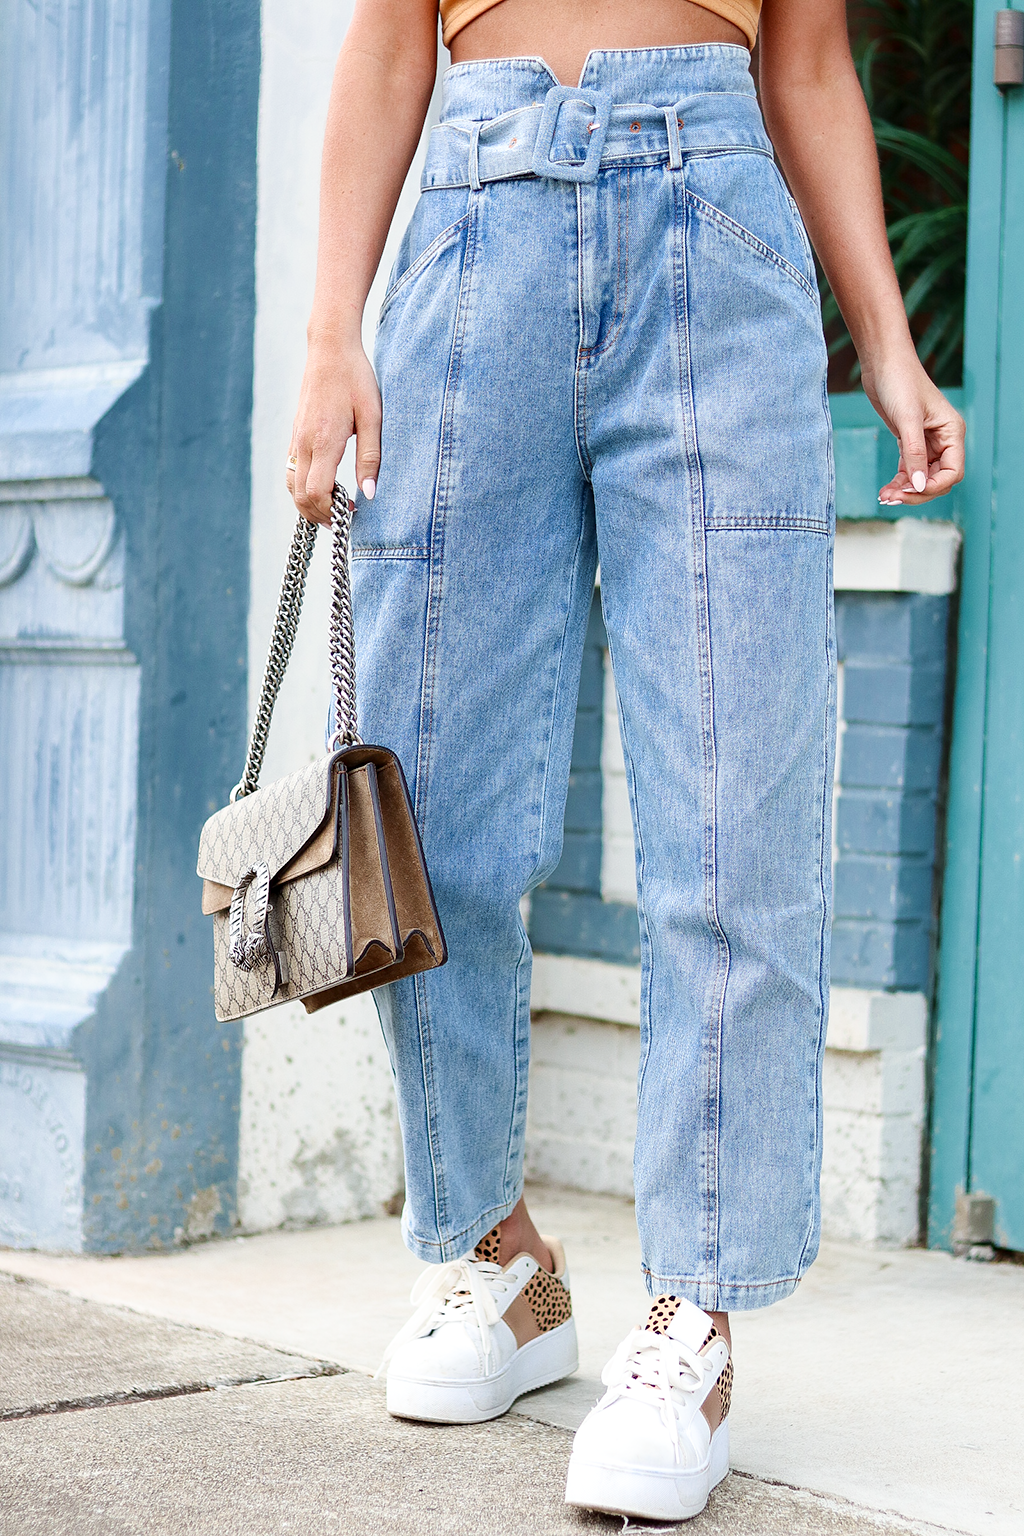 Ahead of You Paper bag Jeans, Light Wash Denim